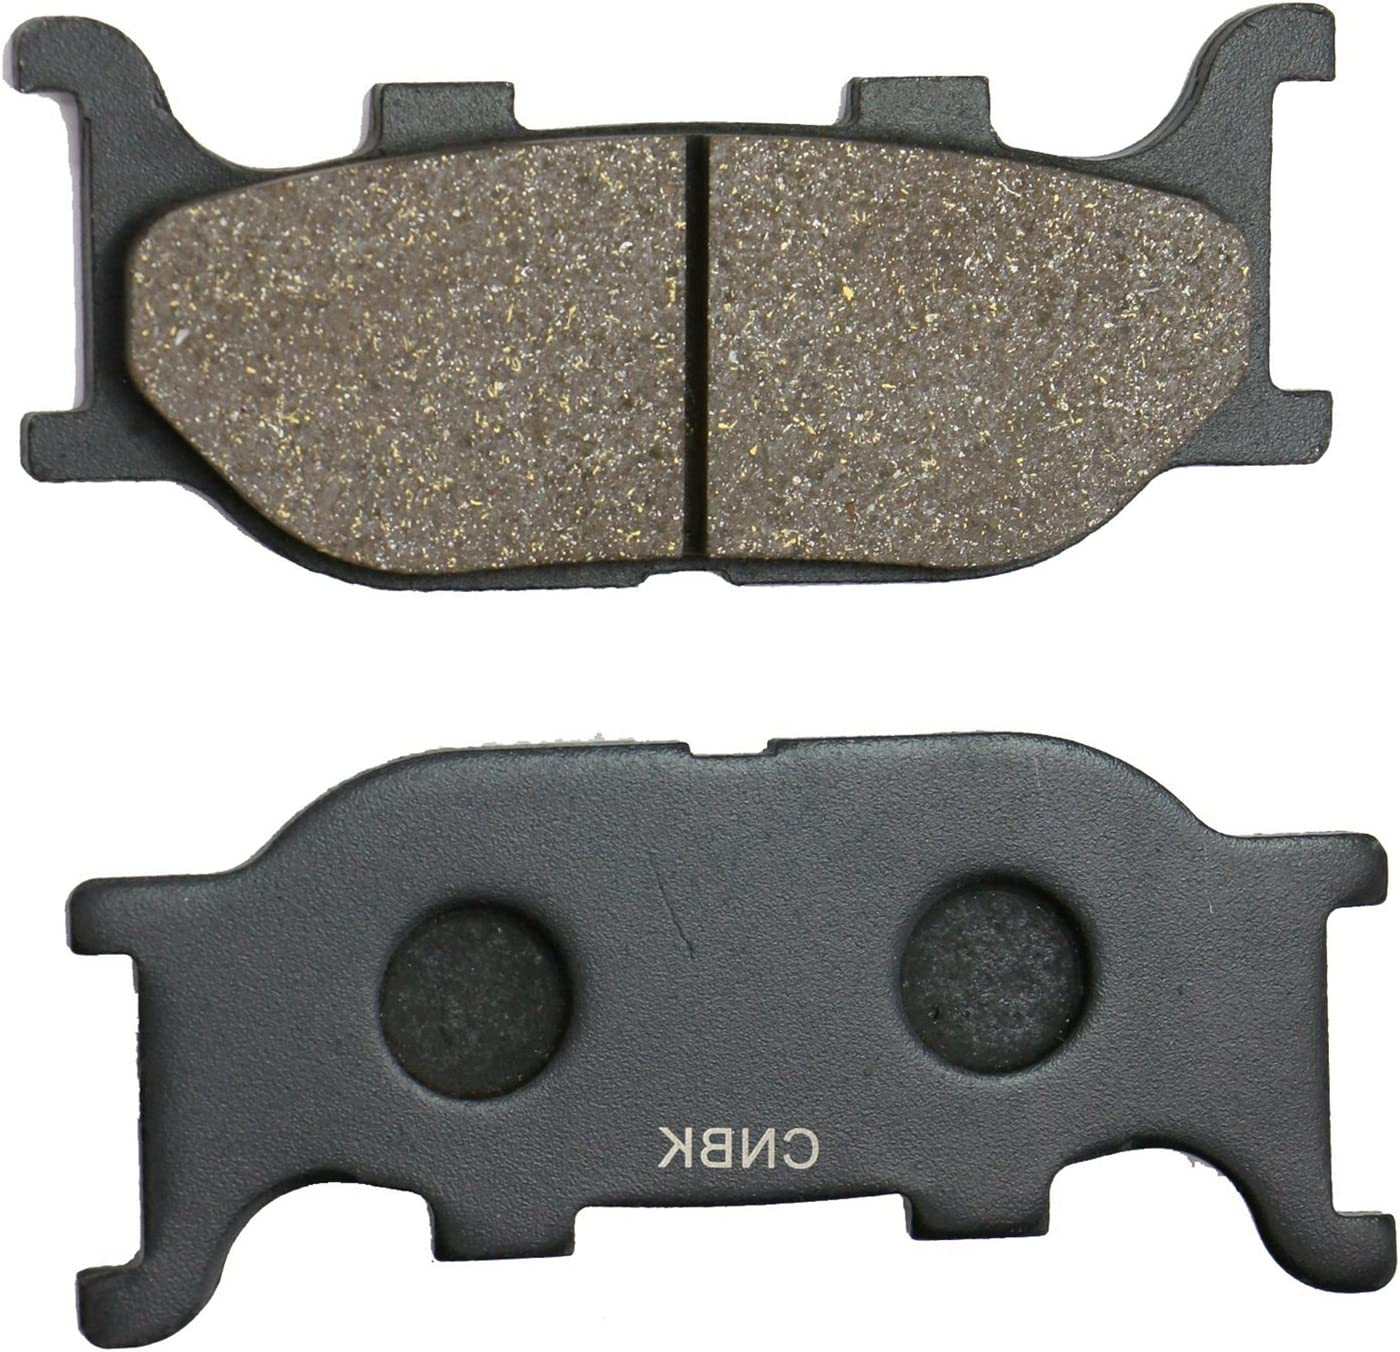 Honda CRF100 F 04-13 Front Standard Brake Shoes by Niche Cycle Supply